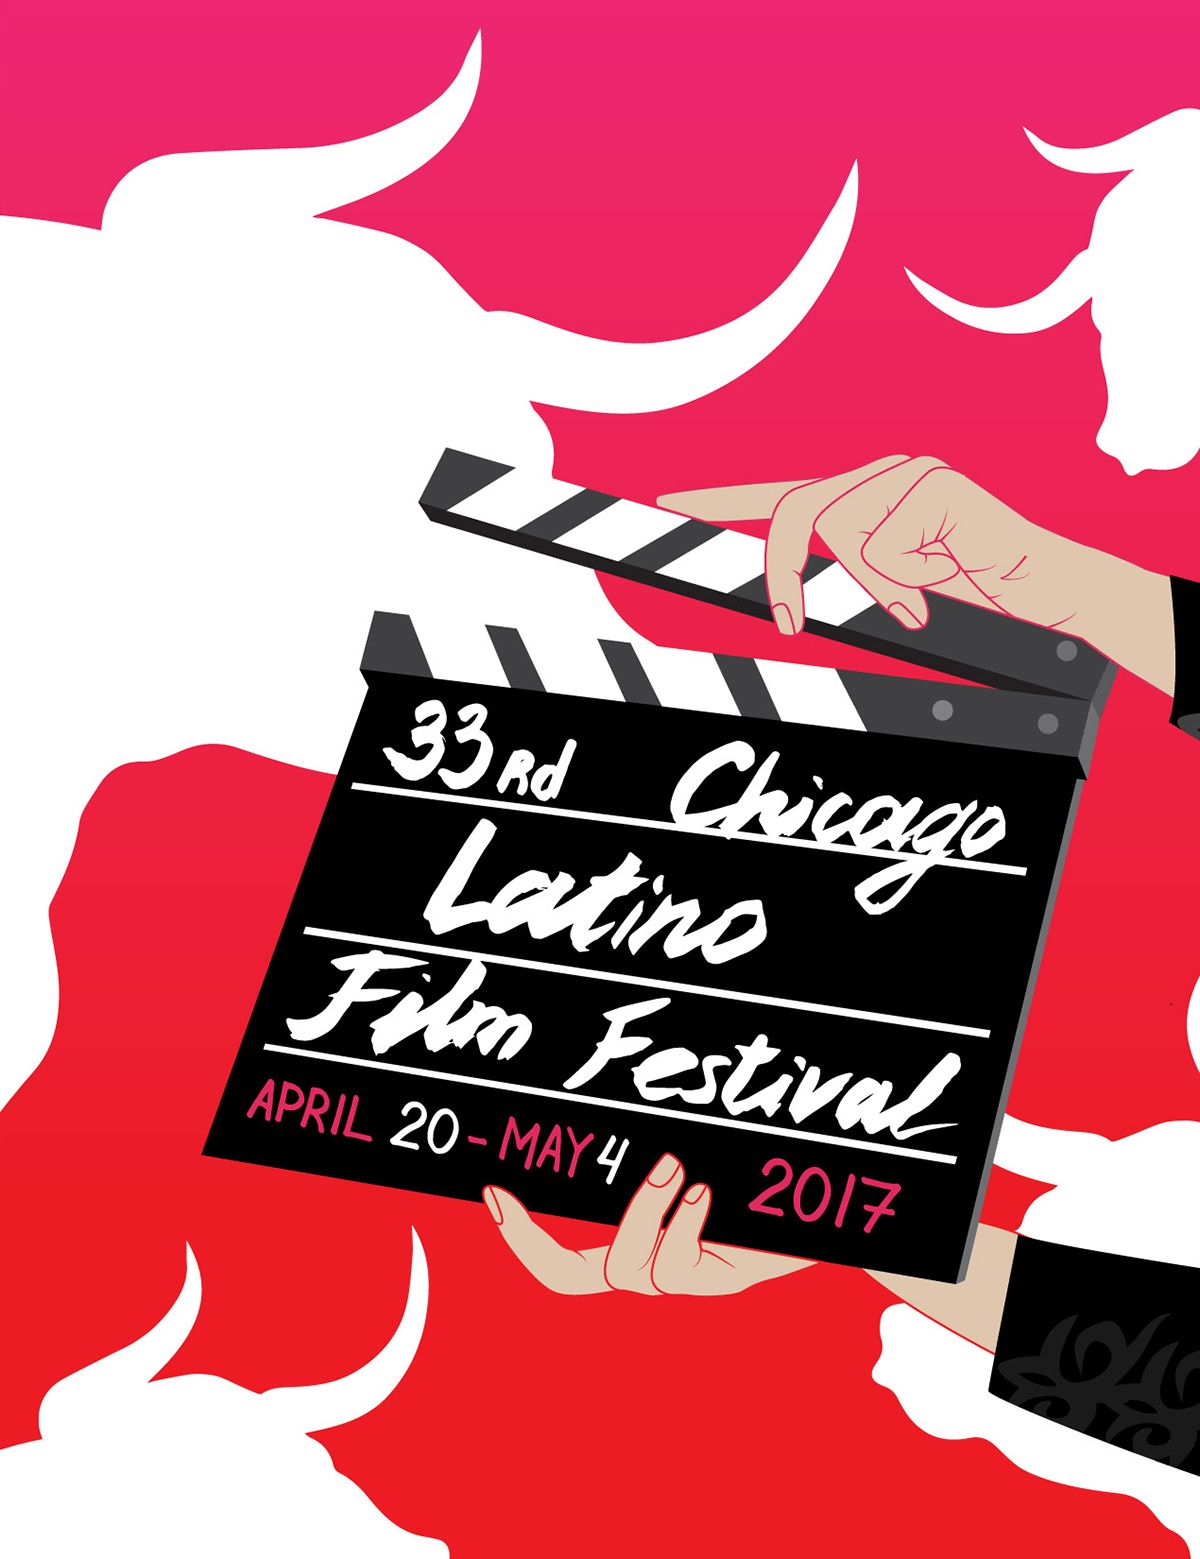 Check out my @Behance project: \u201cCHICAGO LATINO FILM FESTIVAL\u201d https://www.behance.net/gallery/47865875/CHICAGO-LATINO-FILM-FESTIVAL